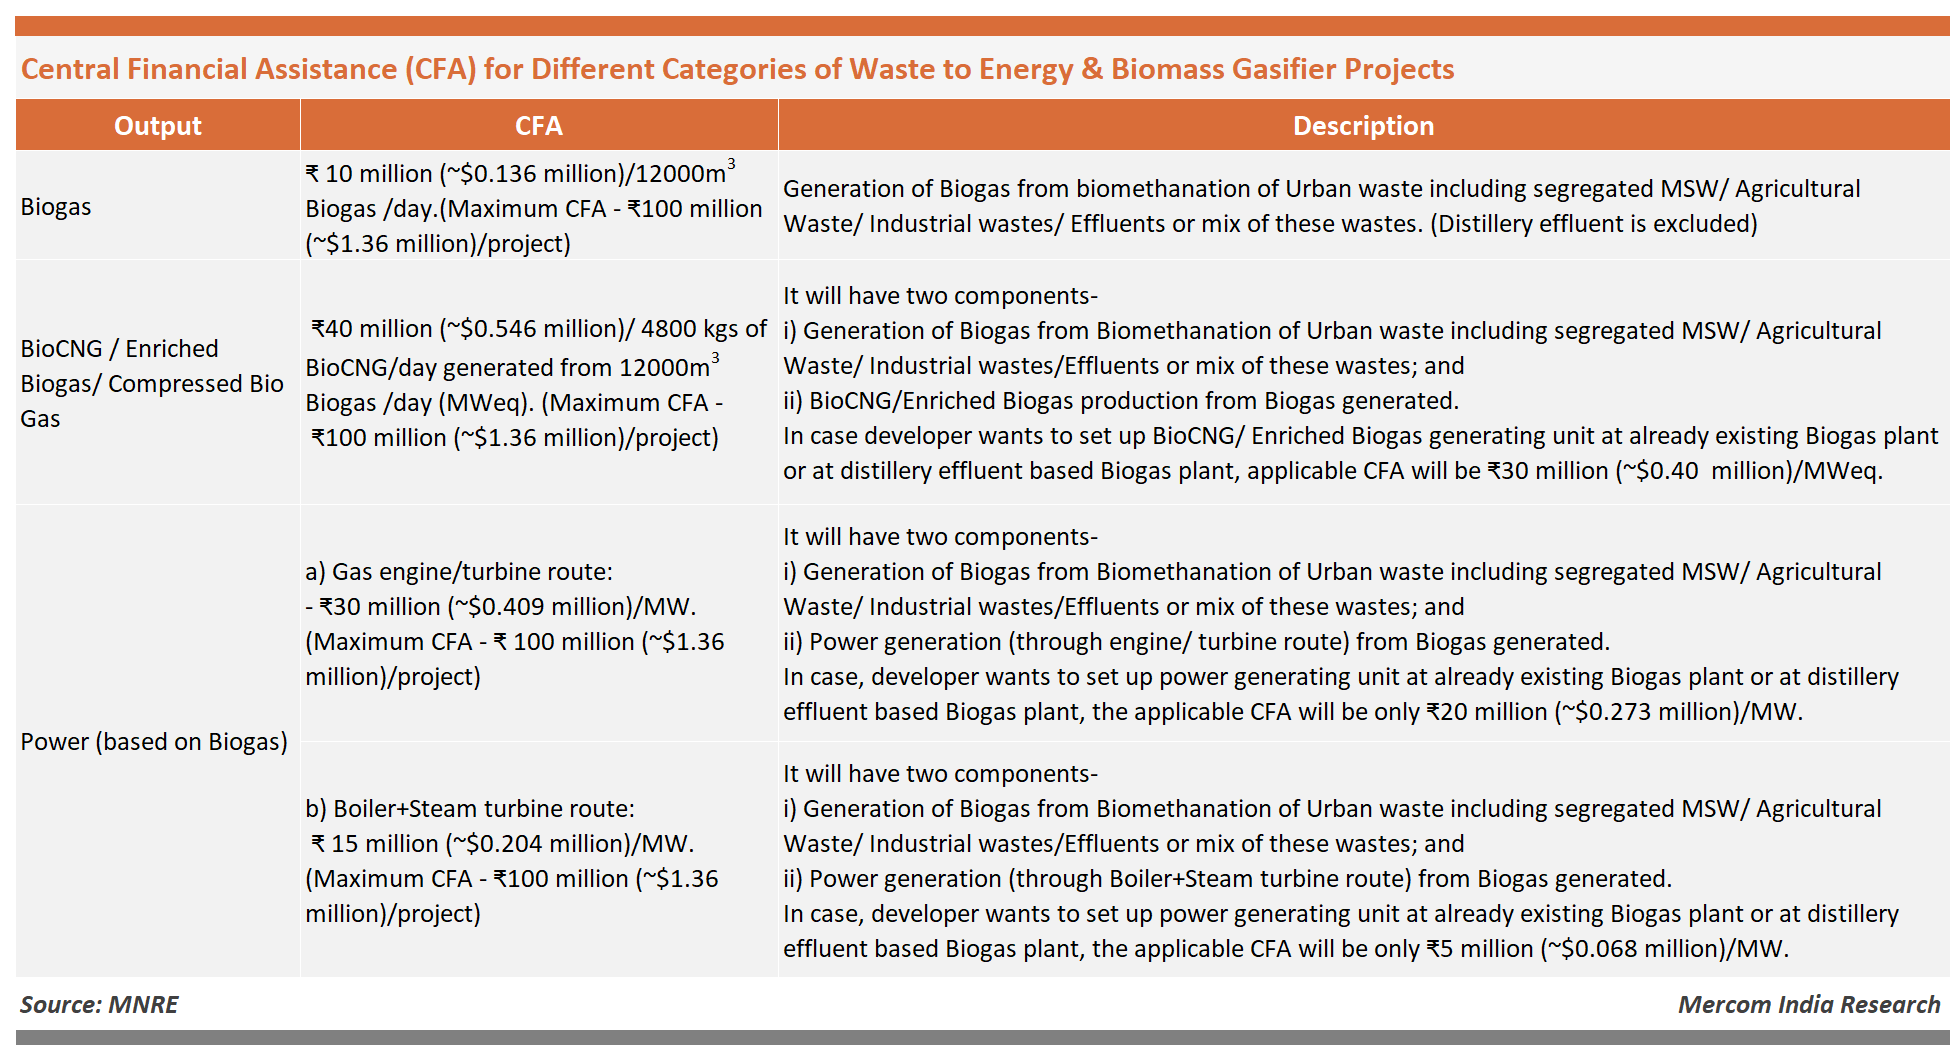 Central Financial Assistance (CFA) for Different Categories of Waste to Energy & Biomass Gasifier Projects